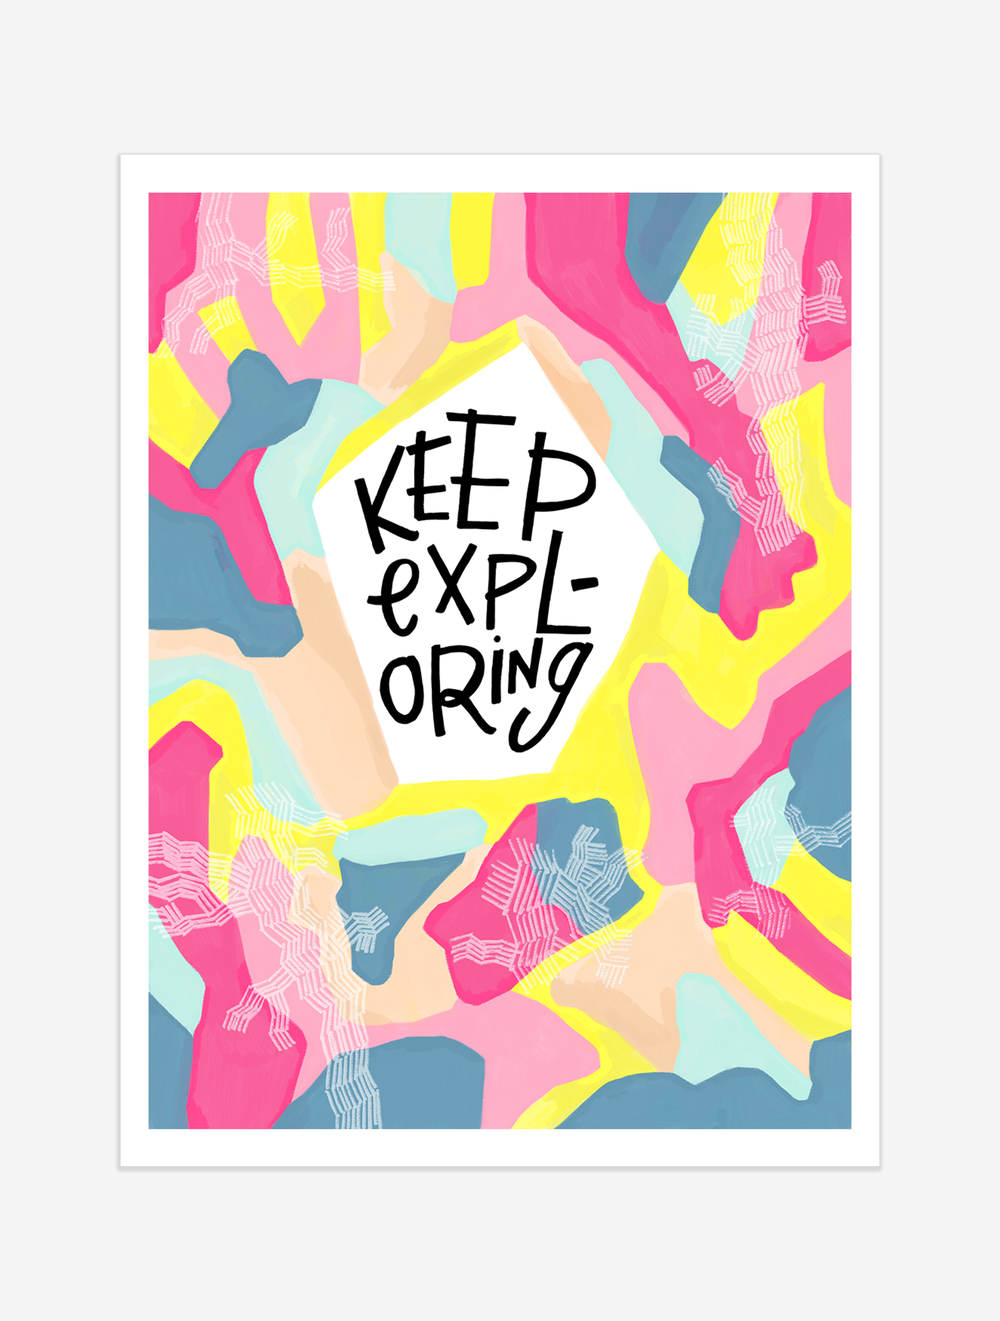 A reminder keep going BEYOND whatever we think our frontiers are so, we might just discover entire worlds we never knew. $25 giclee print available at the Made Vibrant Art Shop.